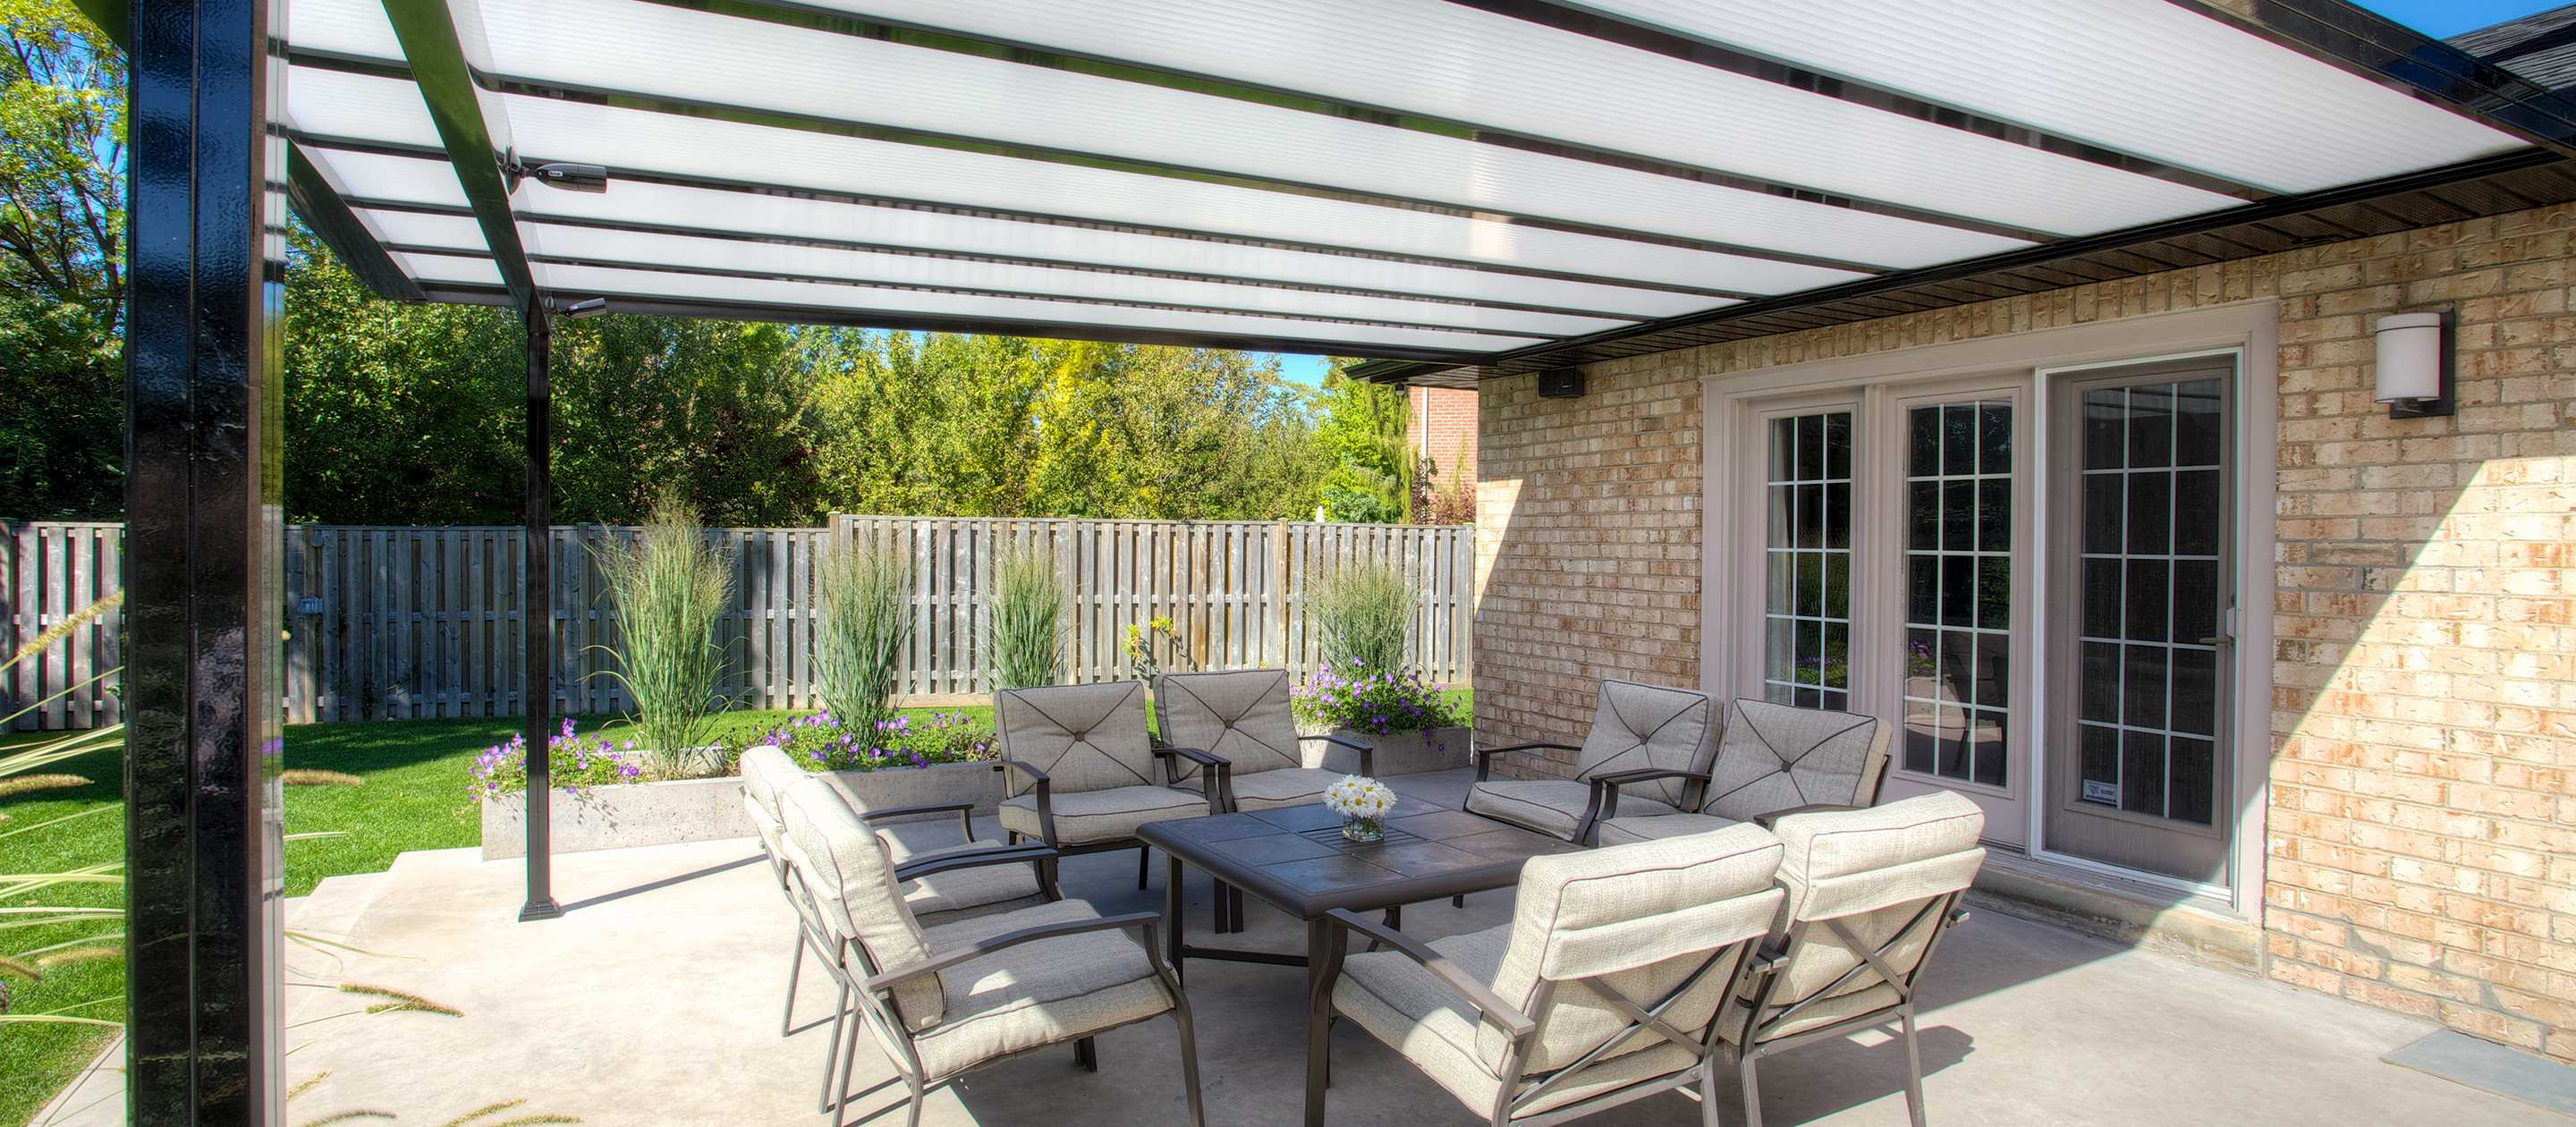 Benefits of Having a Covered Patio in Canada | Lumon on Backyard Patio Cover  id=18664